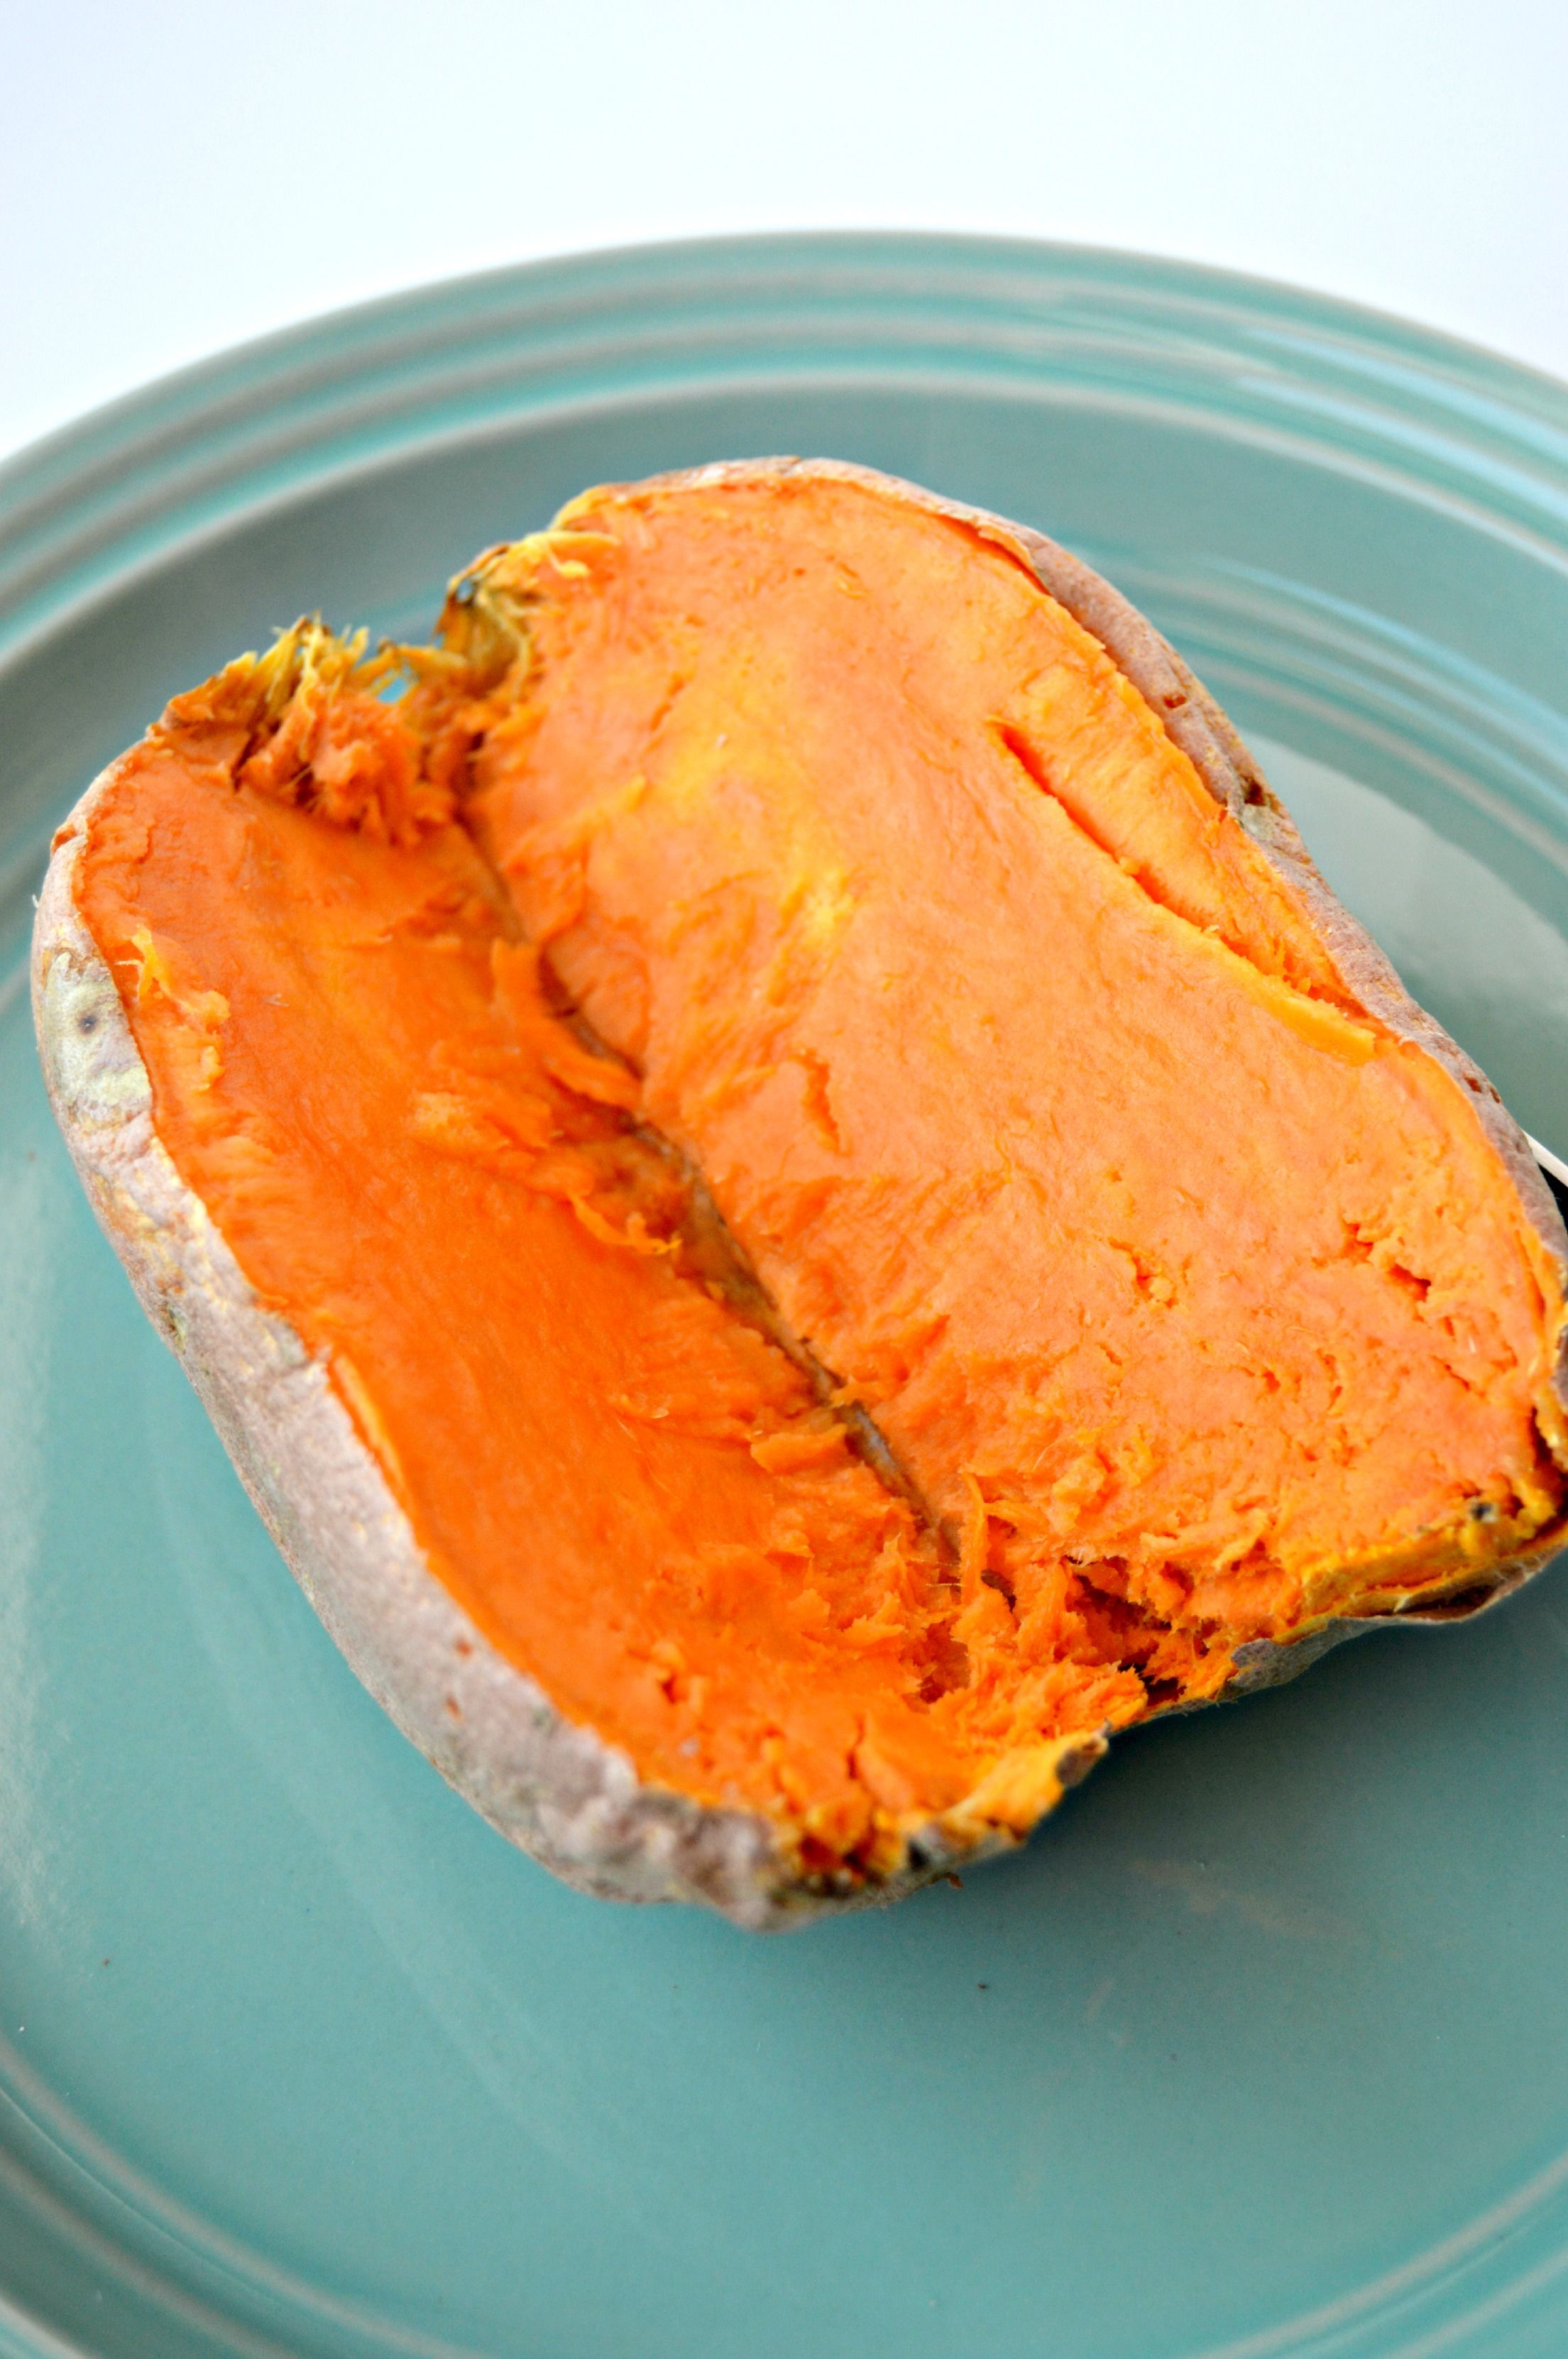 How to bake a sweet potato in the microwave